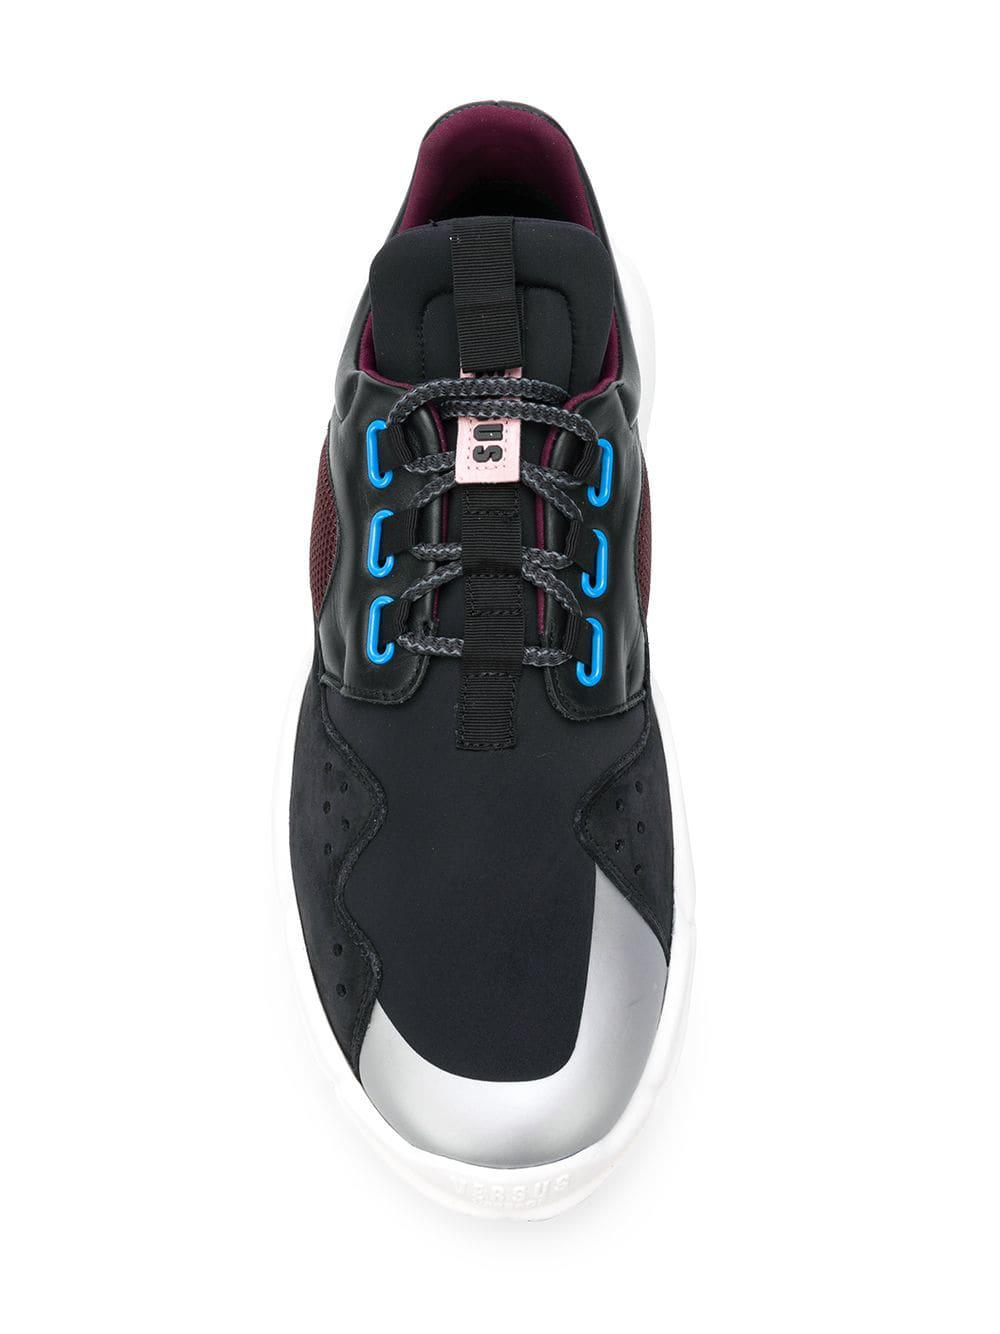 Versus Lace Anatomia Runner Sneakers in